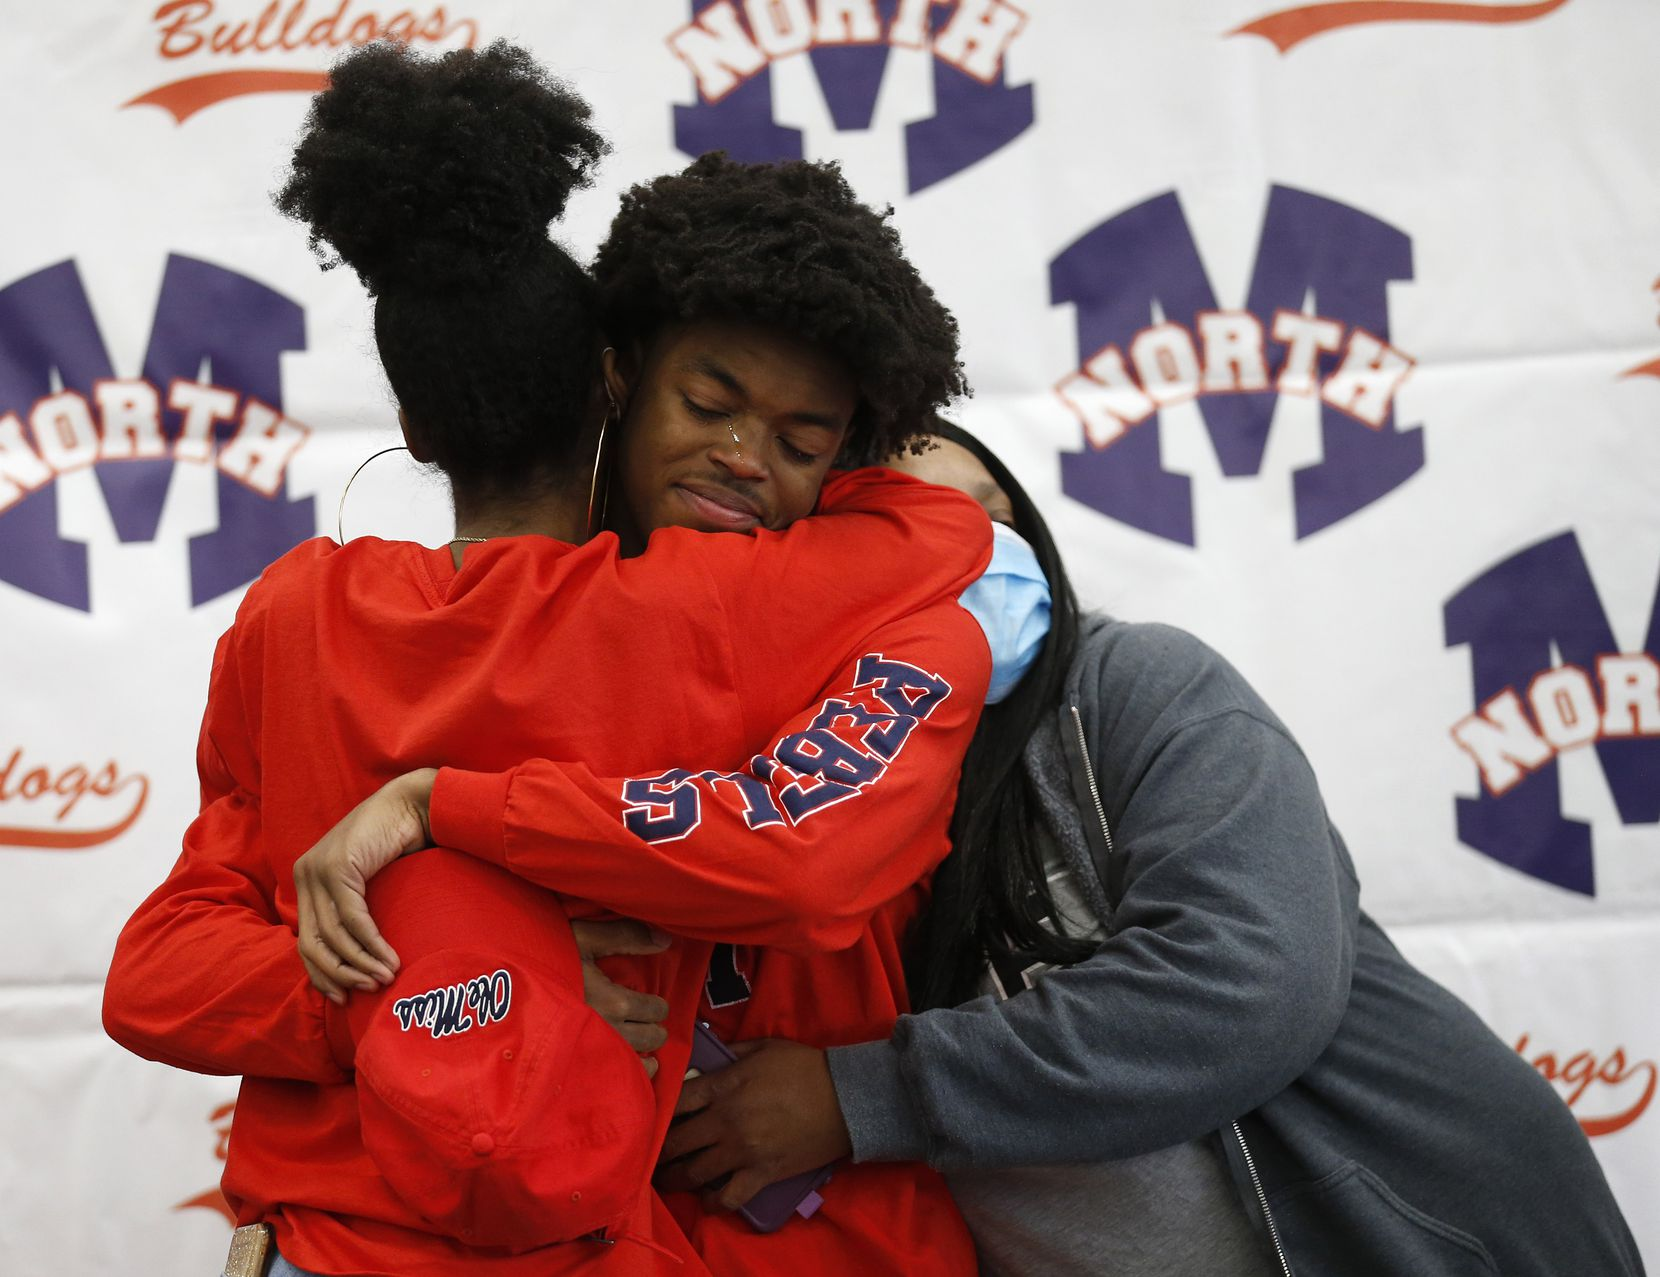 McKinney North wide receiver J.J. Henry gets hugs from his sister Jai-lynn Henry (left) and his aunt Christie Hollins after signing his letter of intent to play for the University of Mississippi during a signing day ceremony at McKinney North High School on Wednesday, December 16, 2020 in McKinney, Texas. (Vernon Bryant/The Dallas Morning News)